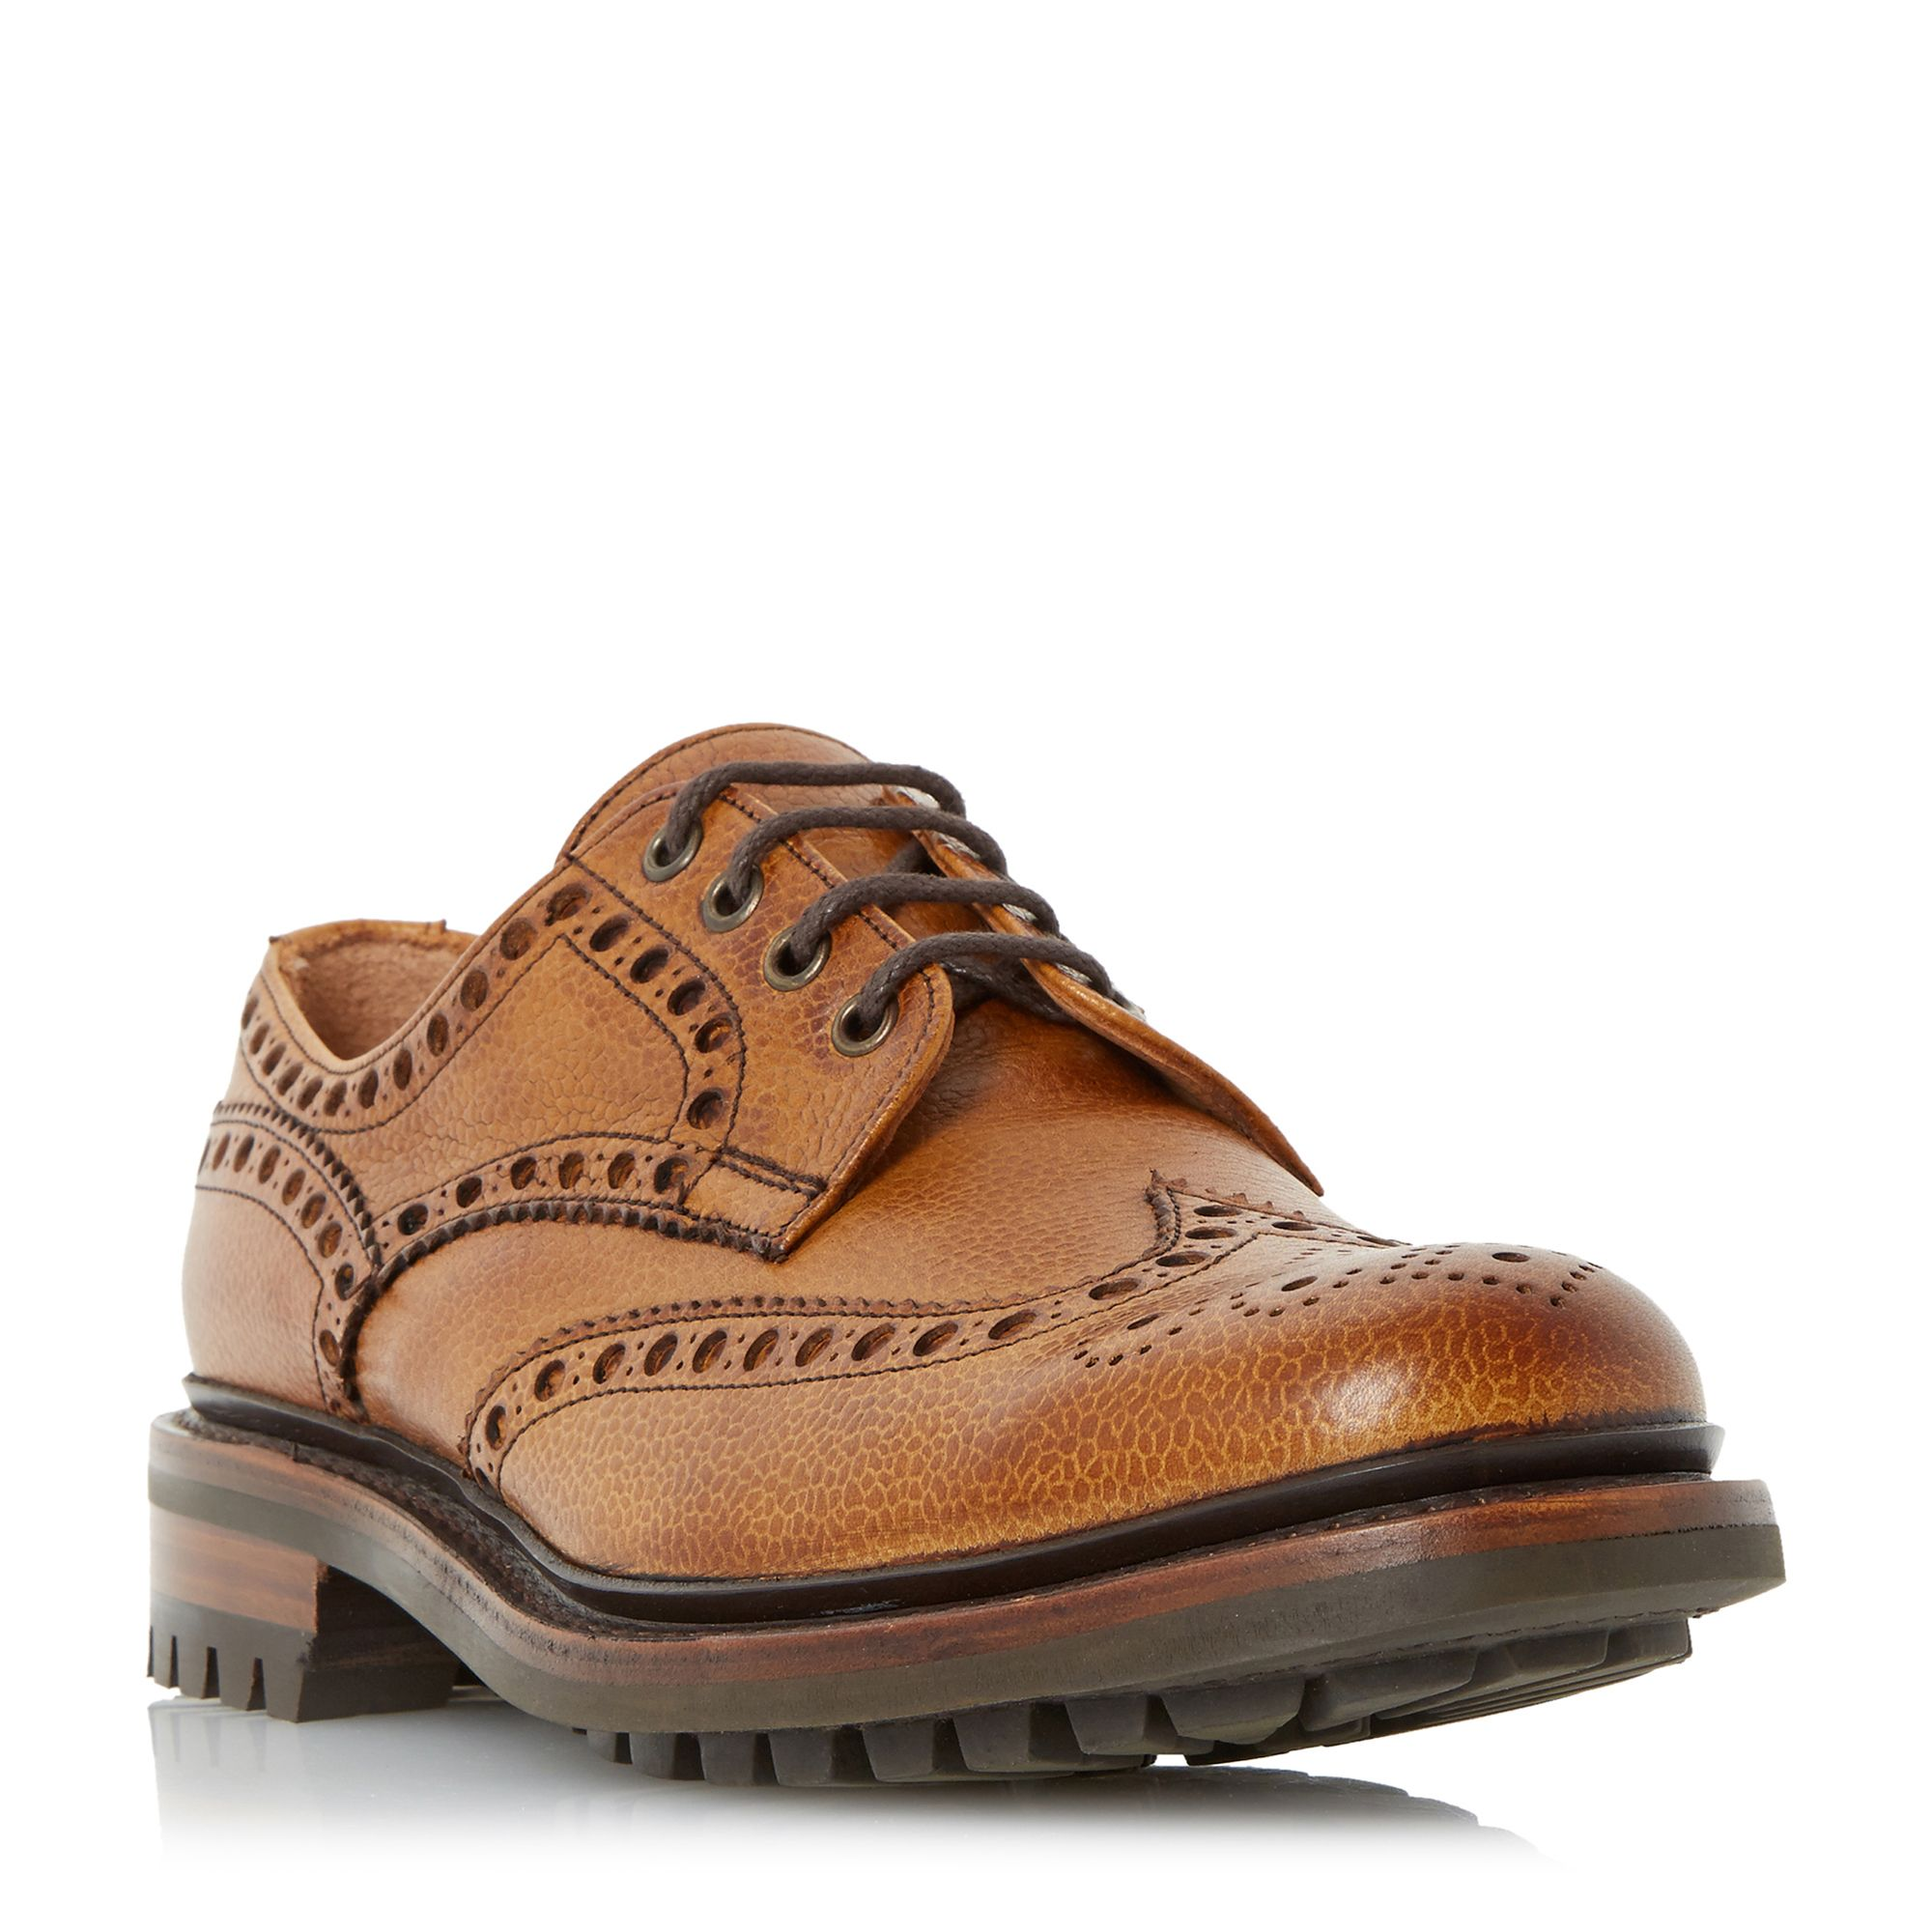 Cheaney Mens Cheaney Mens Avon c Commando Sole Brogues, Tan